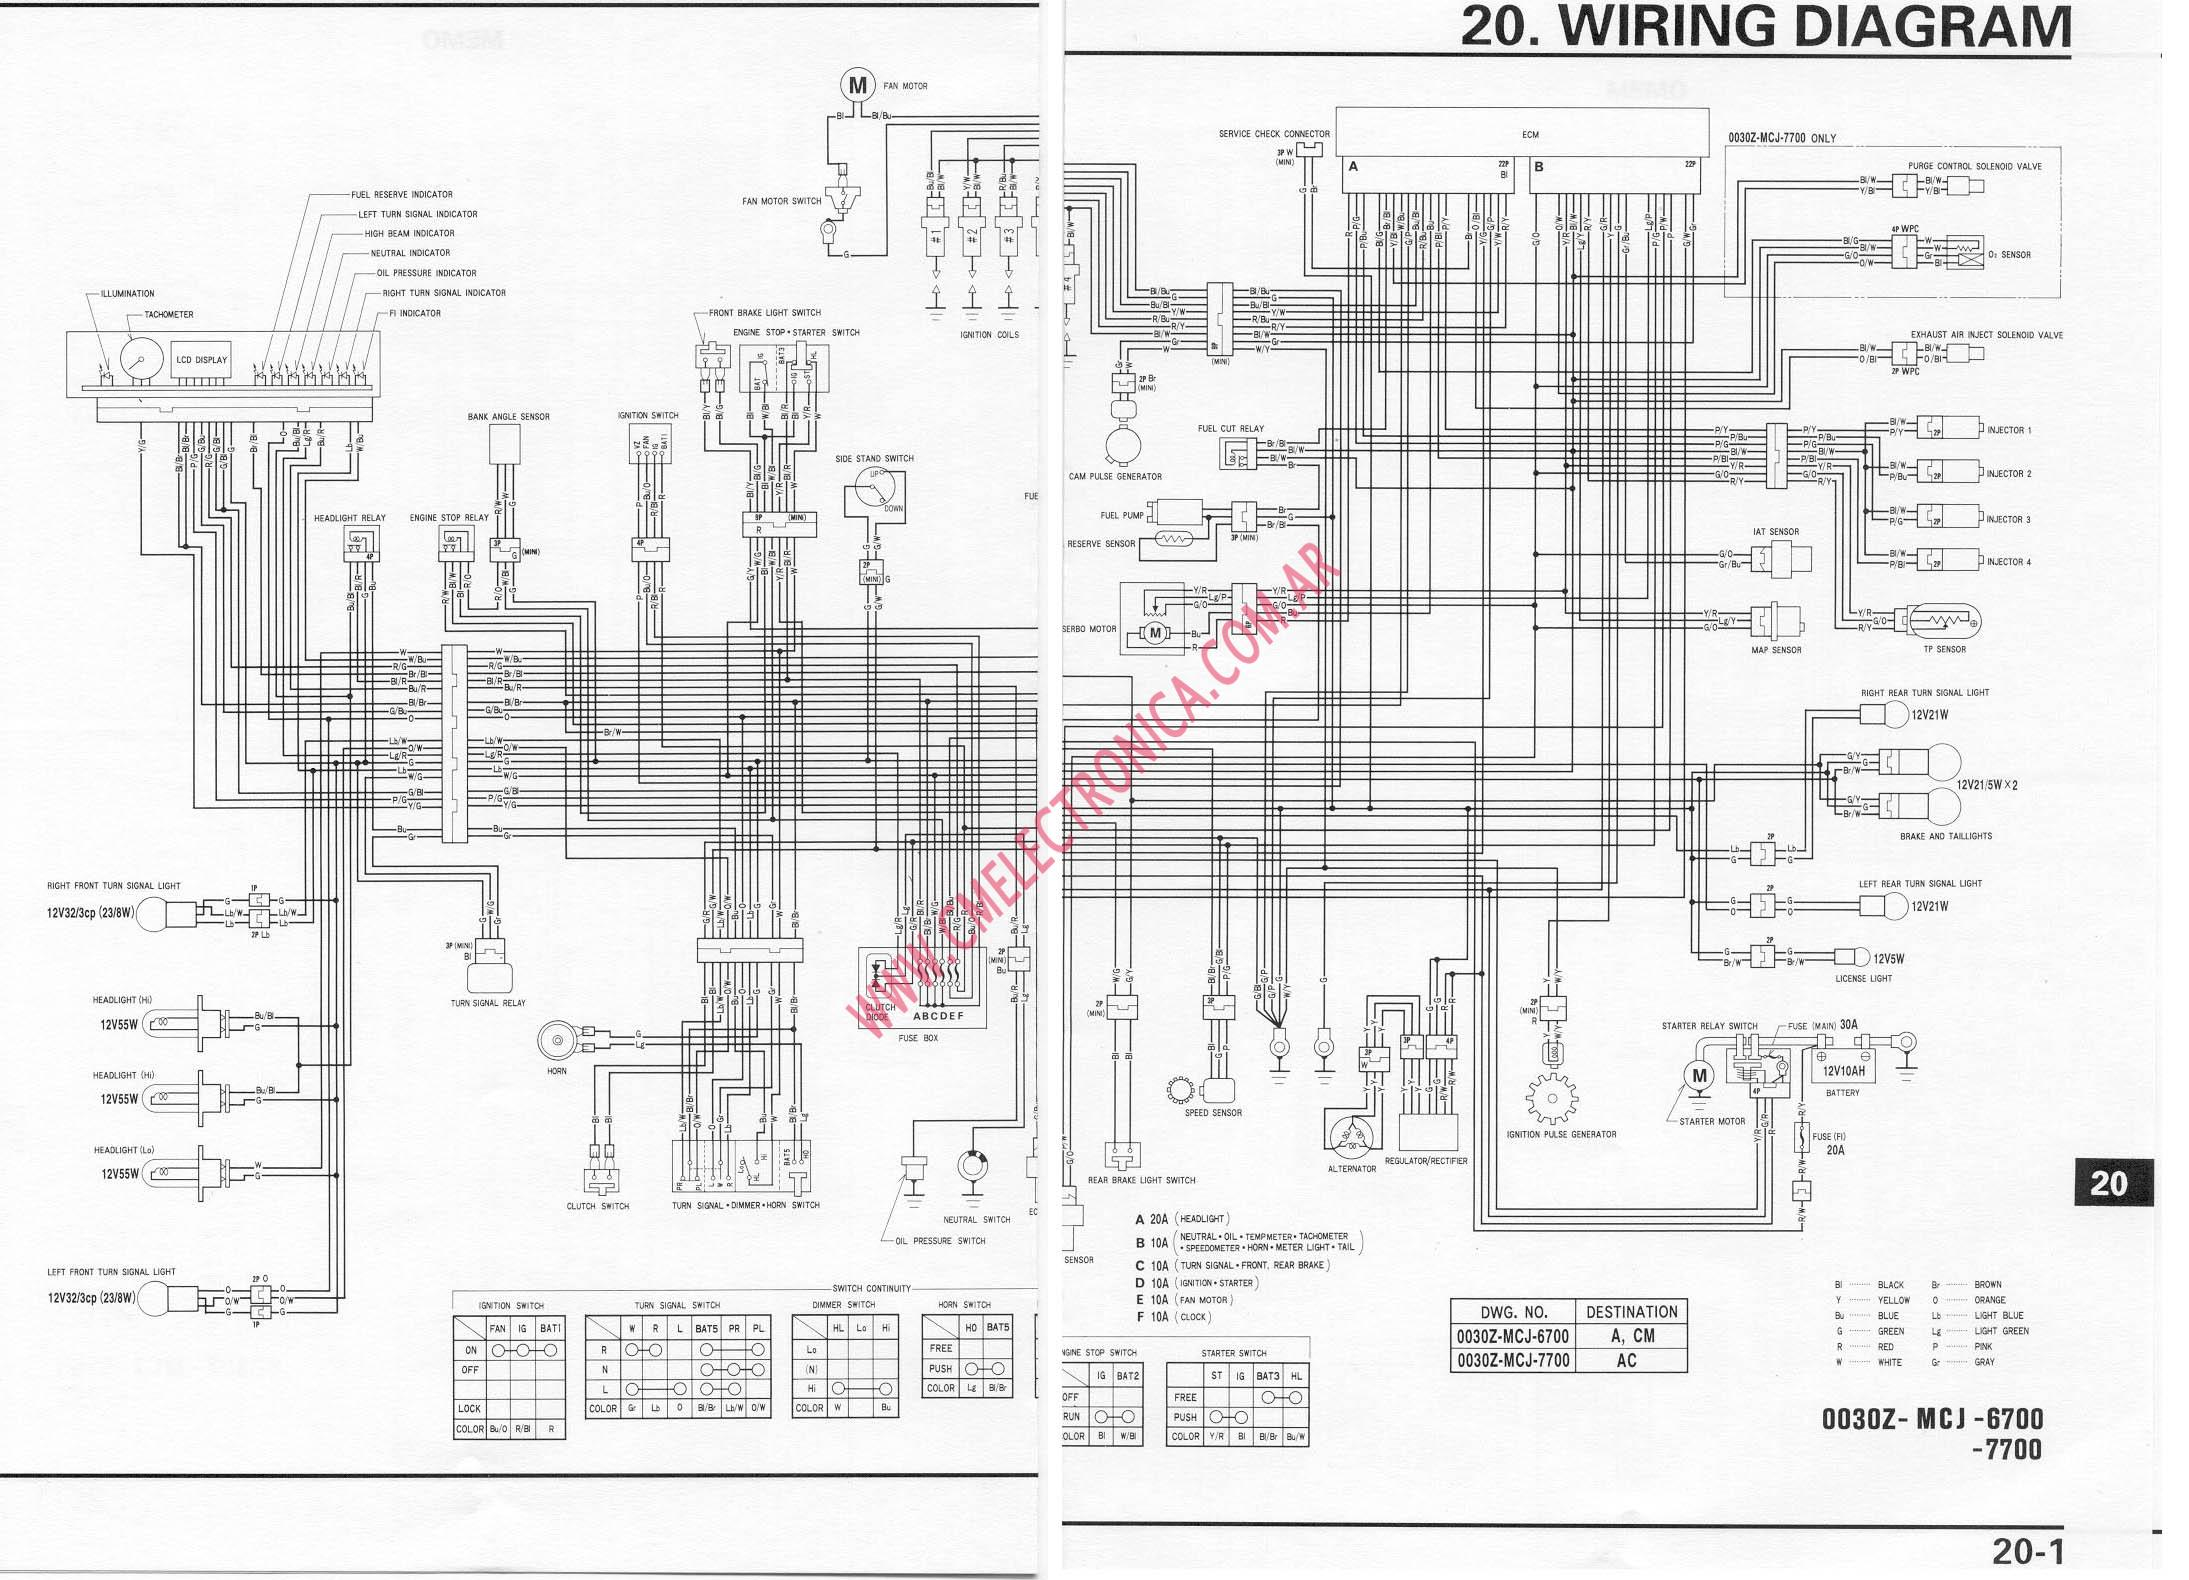 Honda Cbr 600 Wiring Diagram On 2003 Motorcycle, Honda